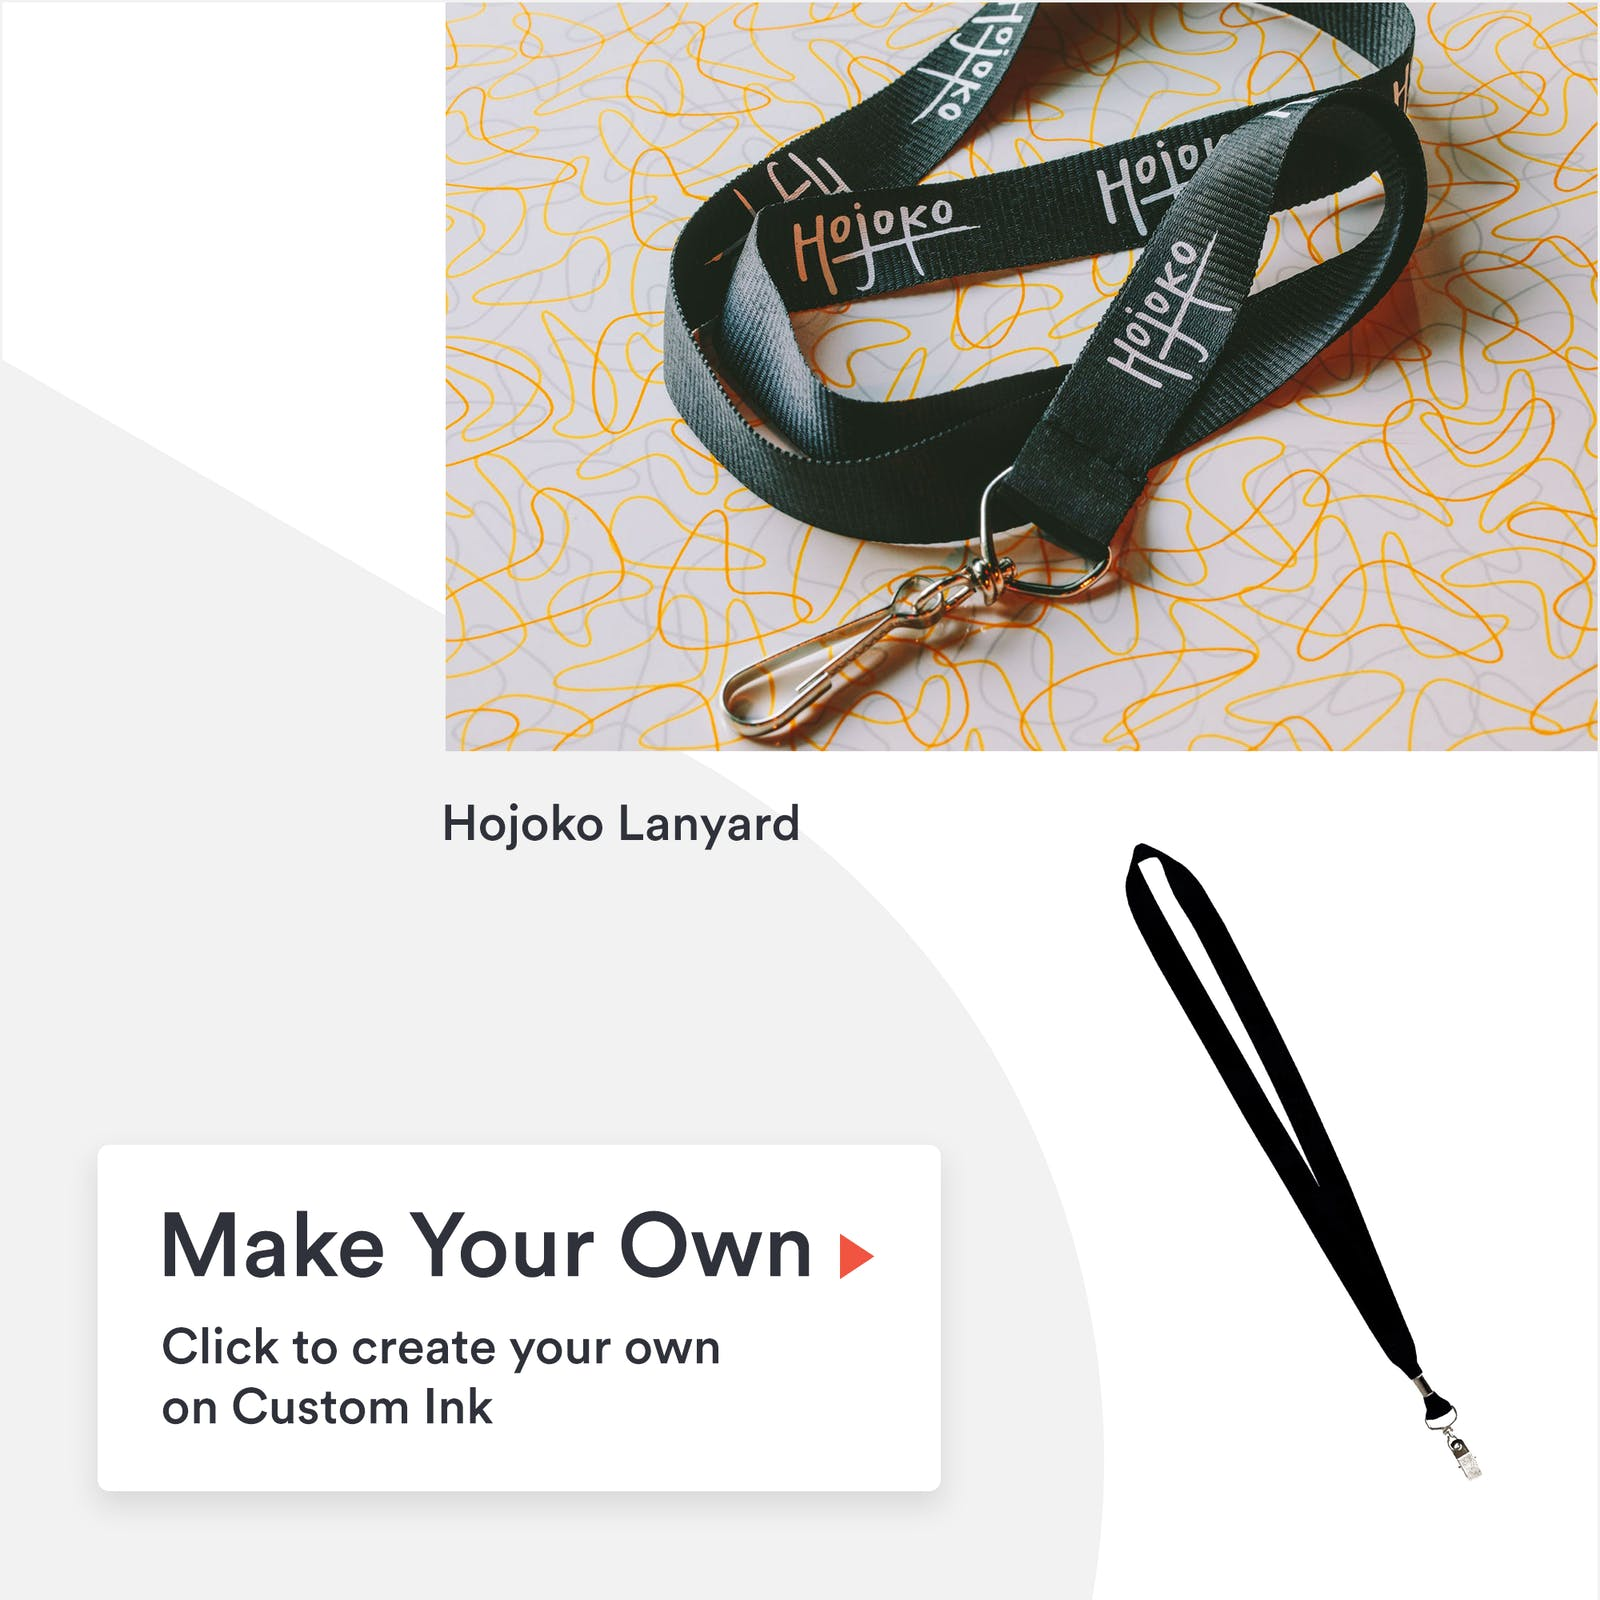 Hojoko lanyard & 3PL option